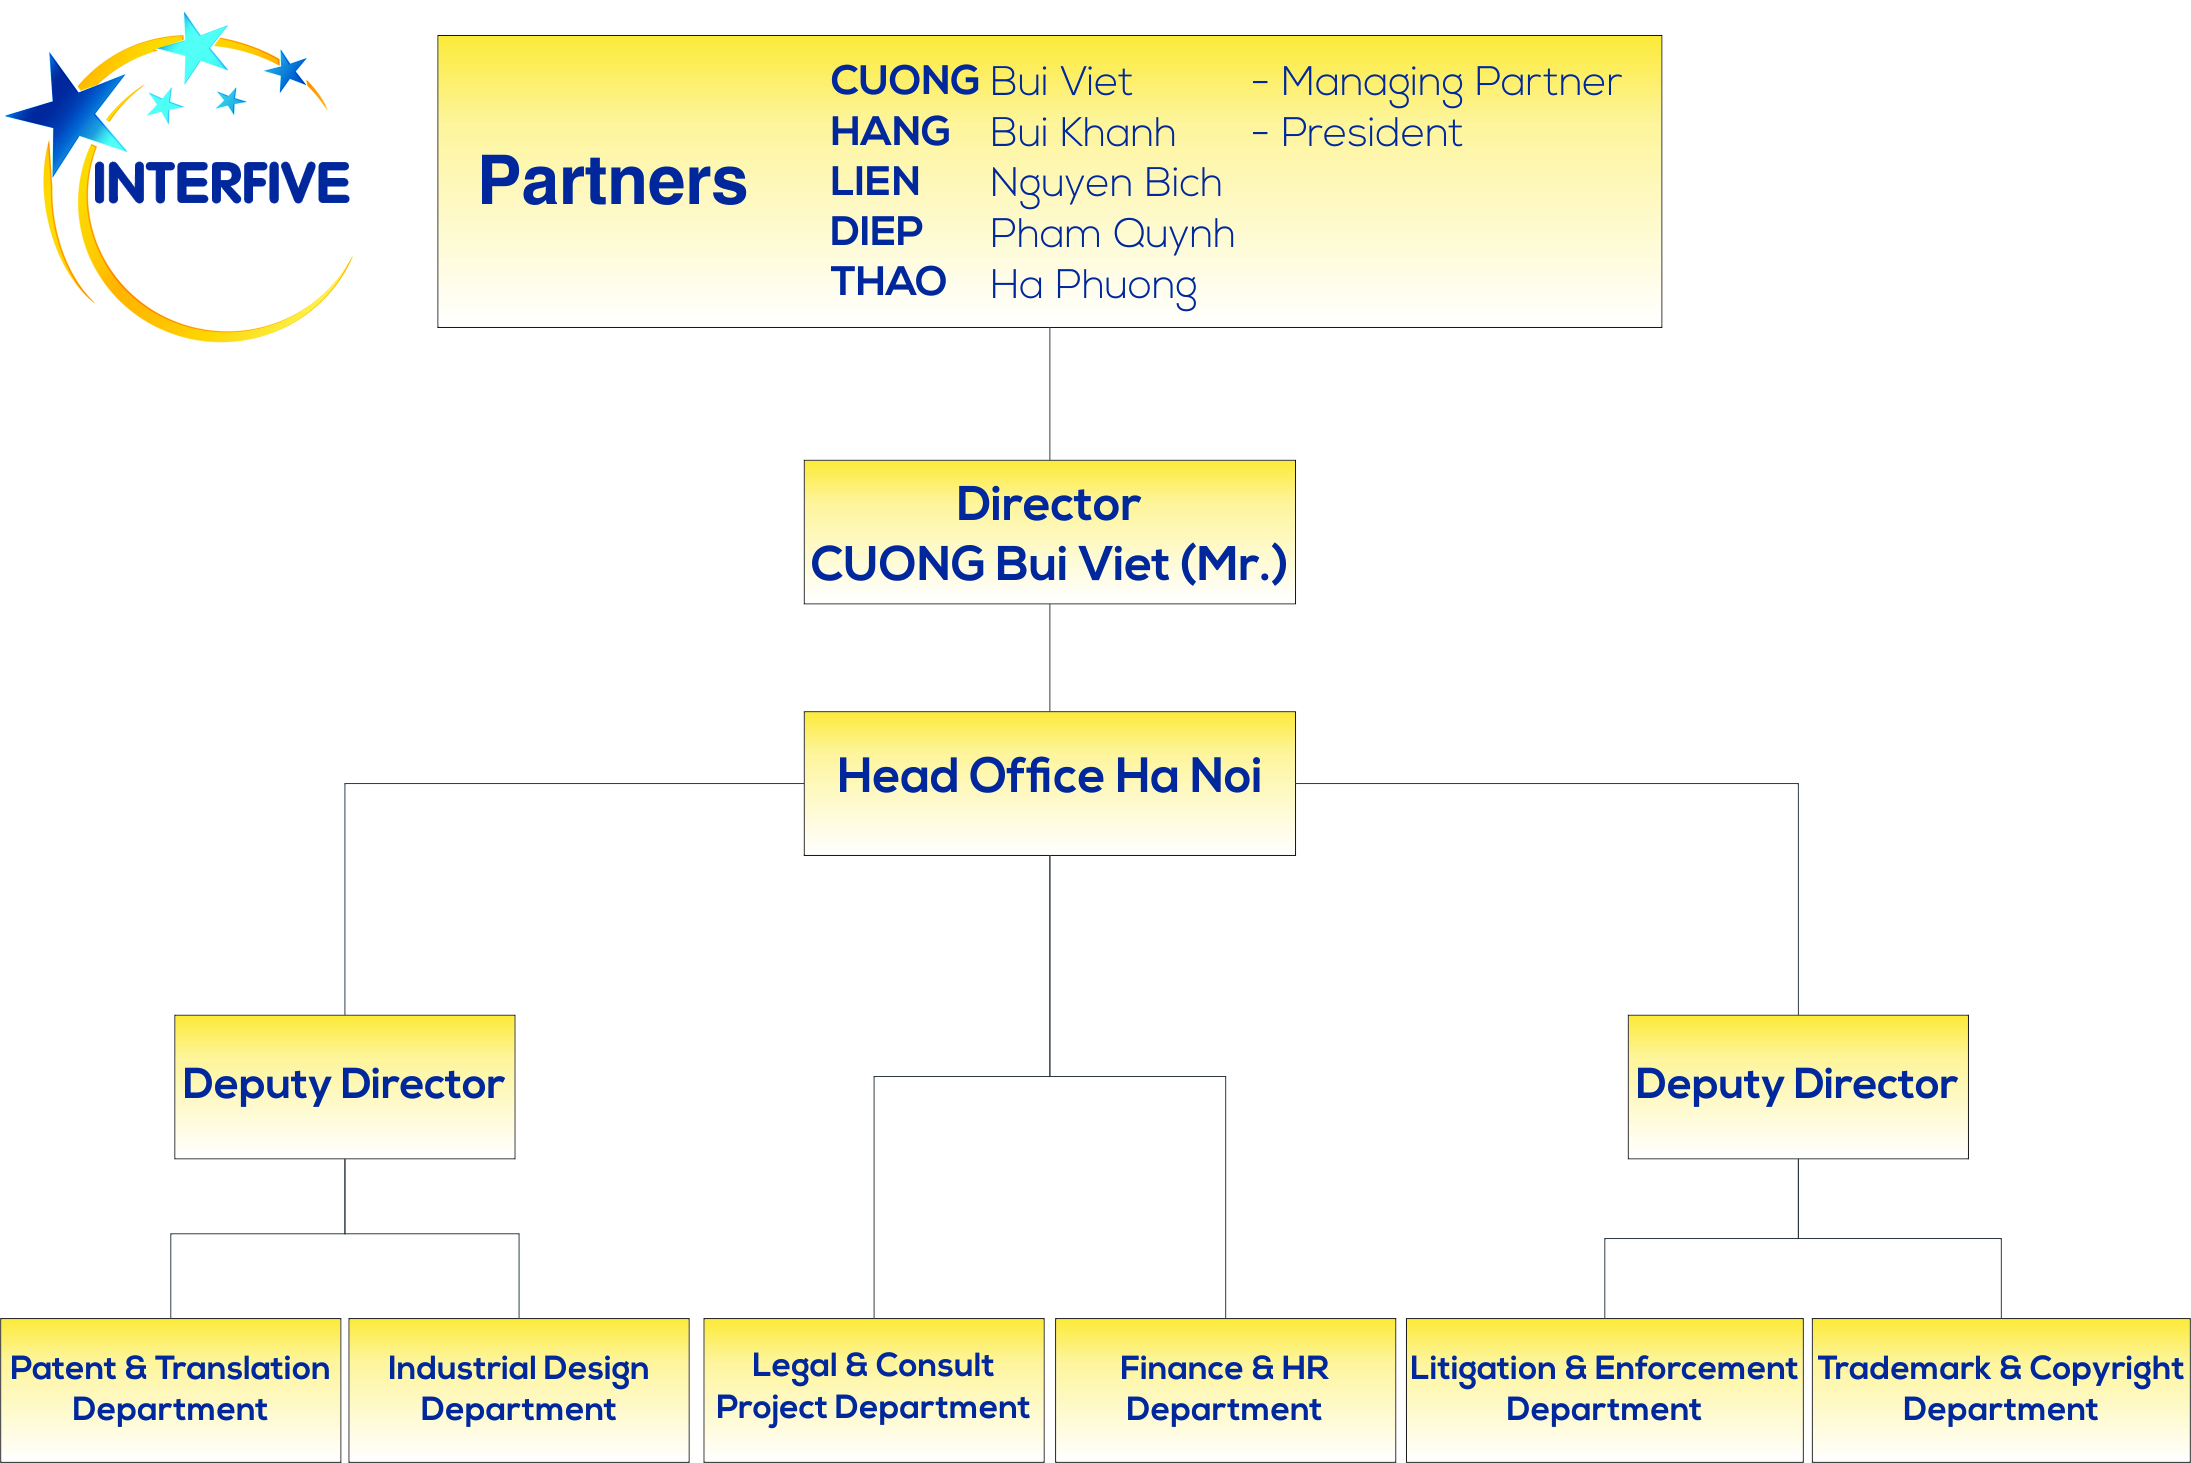 Organization Chart of Interfive